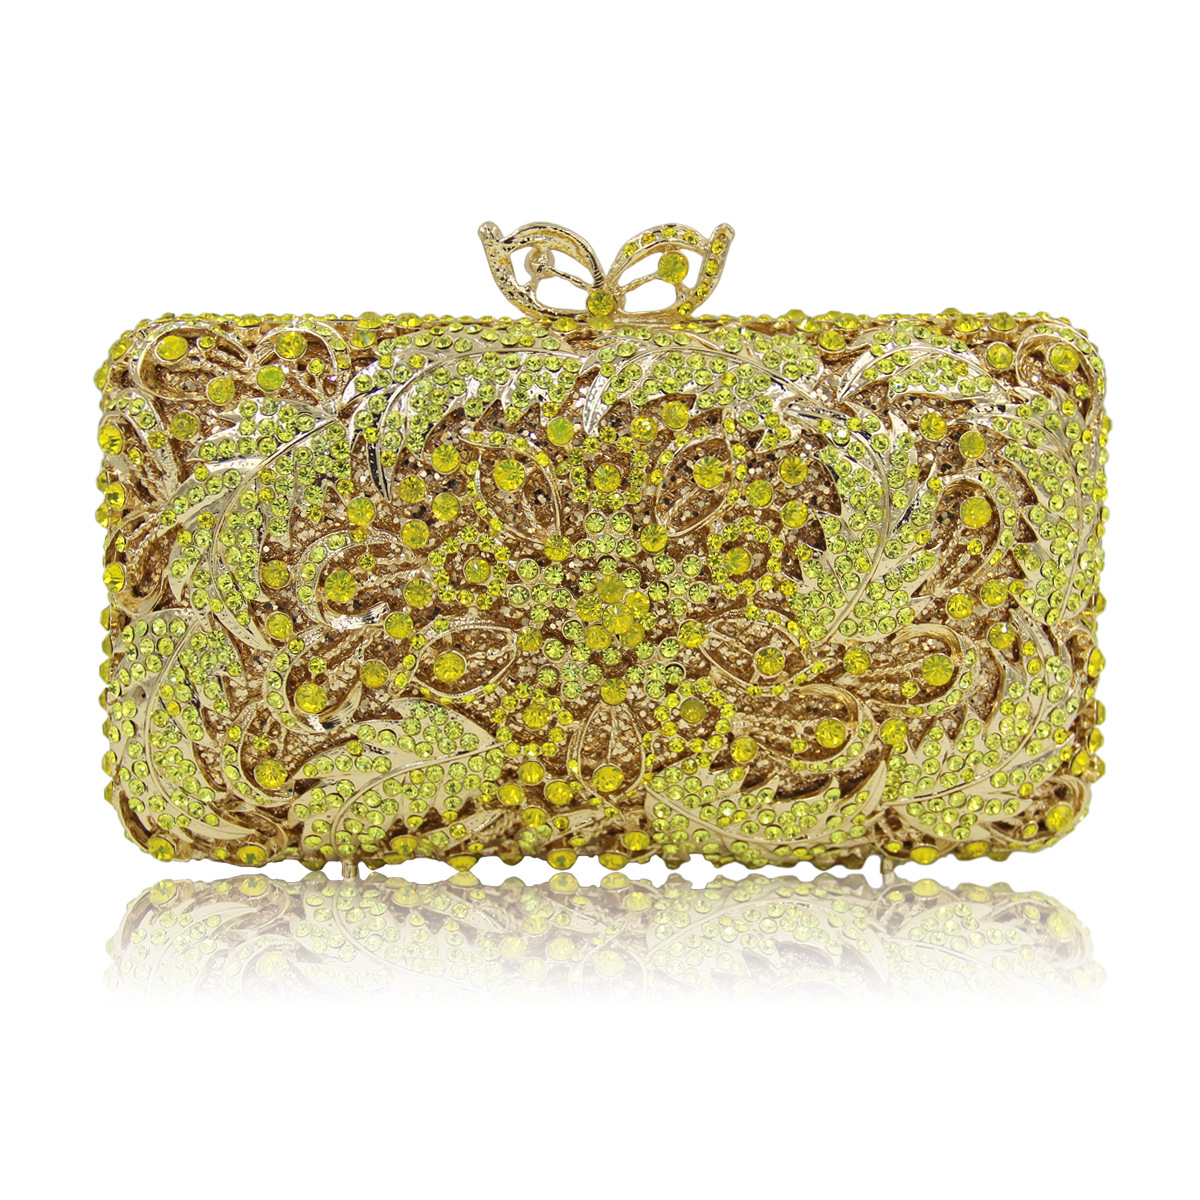 Fashion Gold Women Bag High Quality Designer Brand Evening Bags Clutch For Woman Shoulder Crystal With Chain Smyzh-e0321 2016 new luxury women designer handbags high quality brand casual bags for women evening bag clutch bag woman cute bag